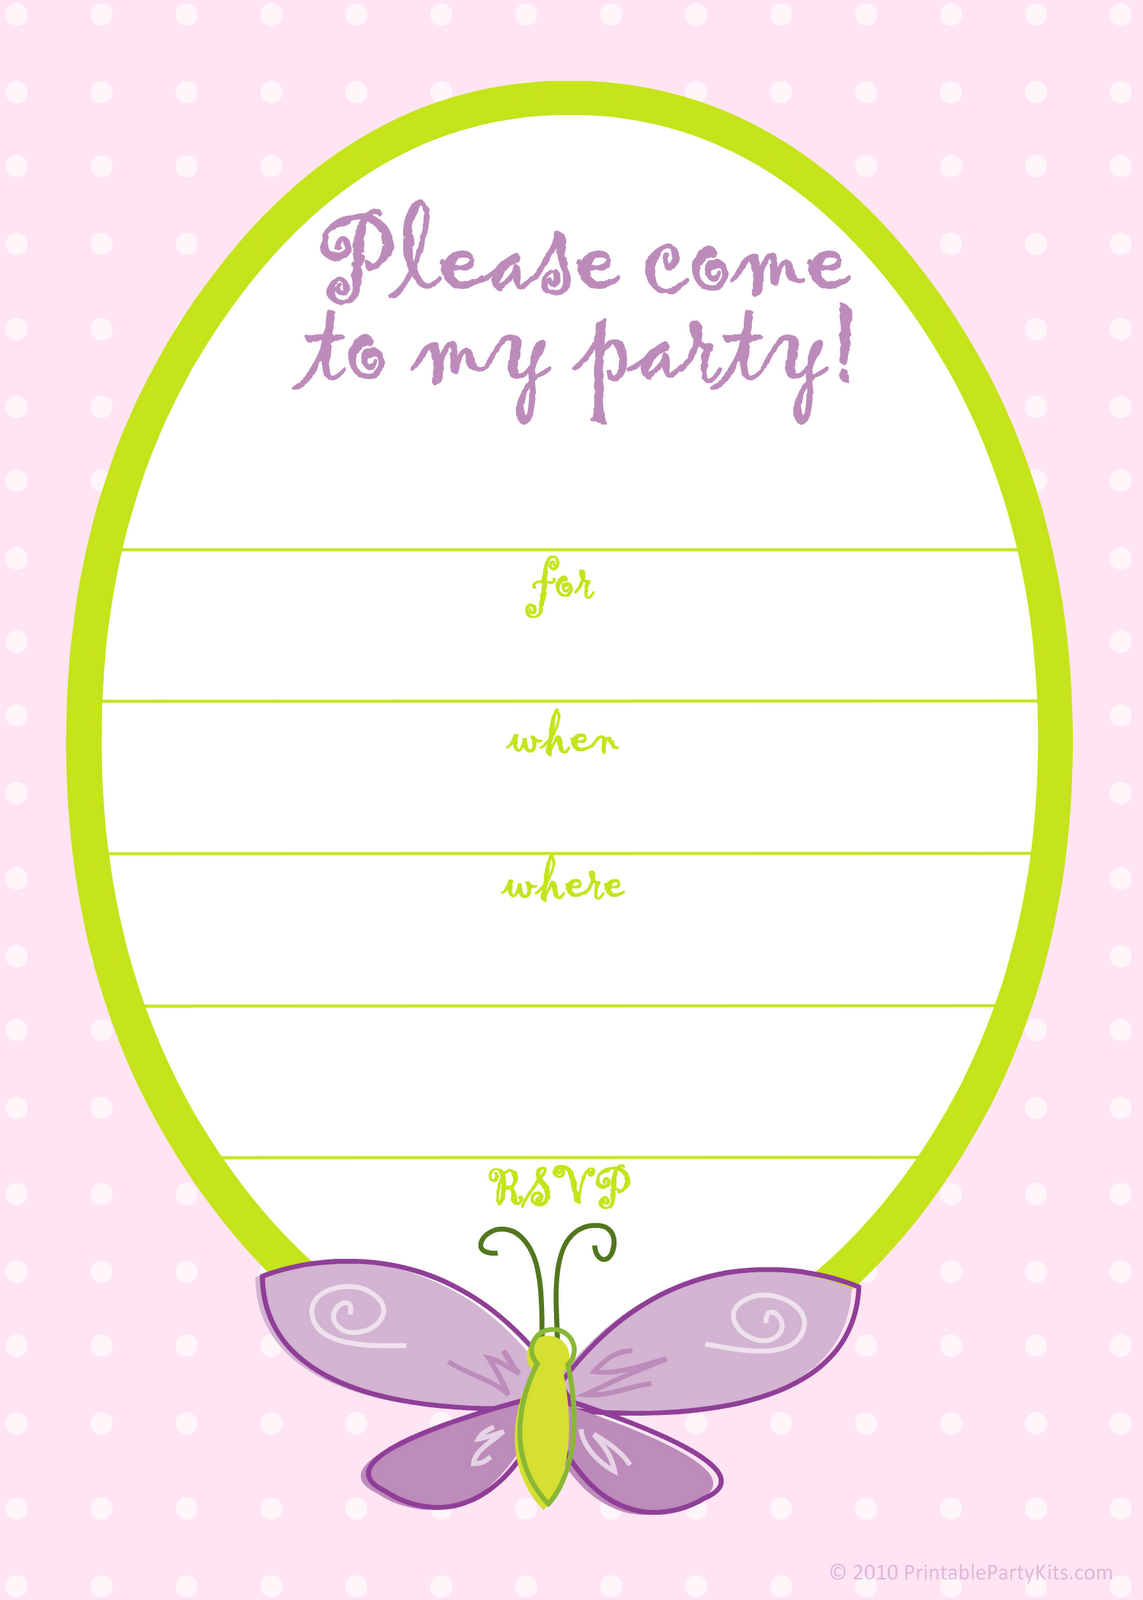 birthday invitations templates for girls invitation sample printable party middot birthday invitations templates for girls